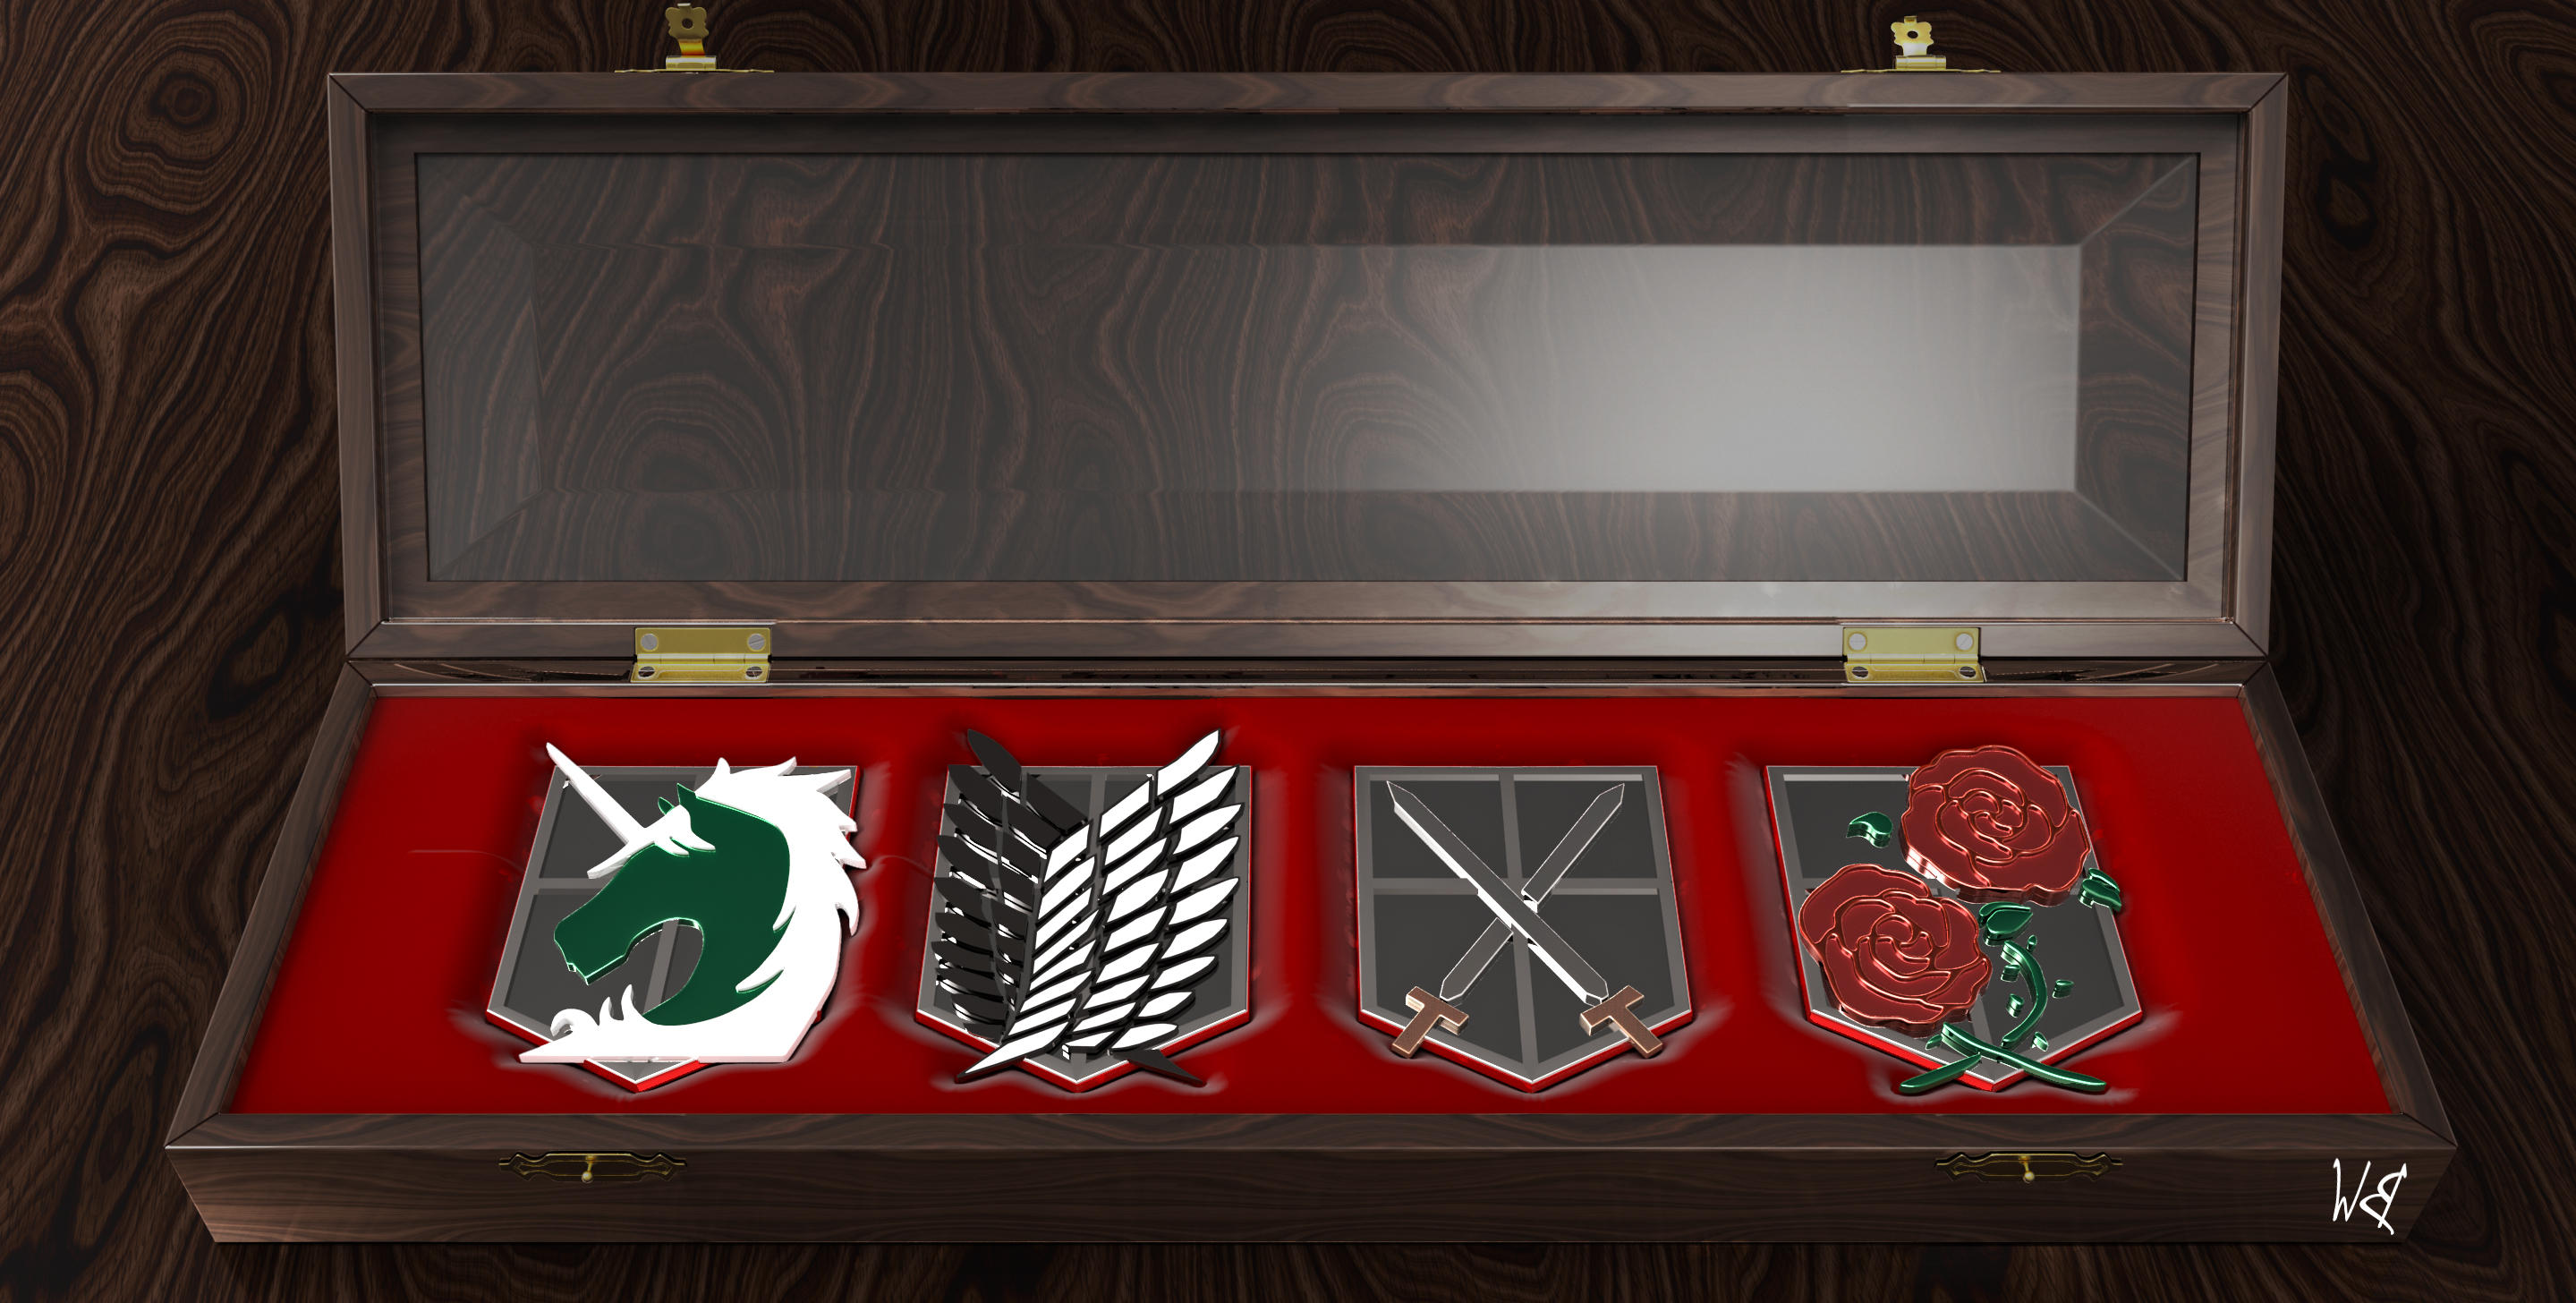 Attack on Titan Military Branch Emblems by Bahr3DCG